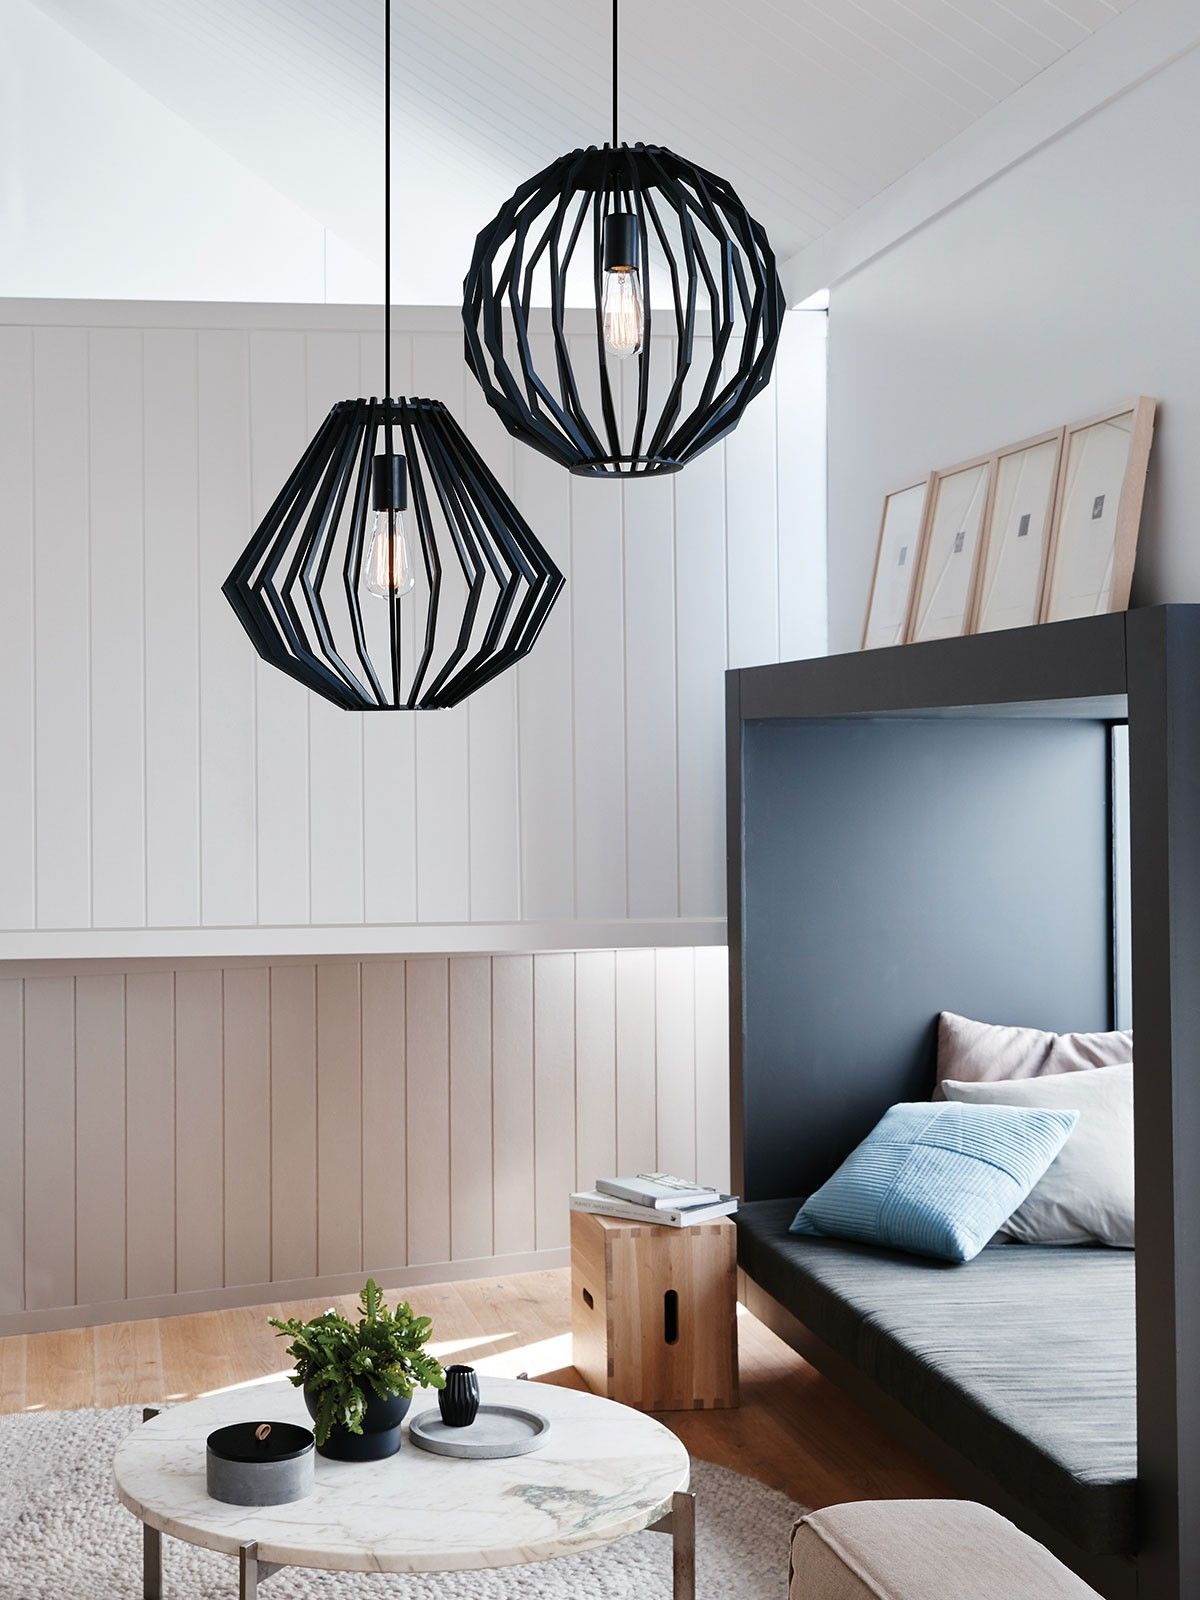 Walderik large squat pendant in black modern pendants pendant walderik large squat pendant in black modern pendants pendant lights lighting aloadofball Images